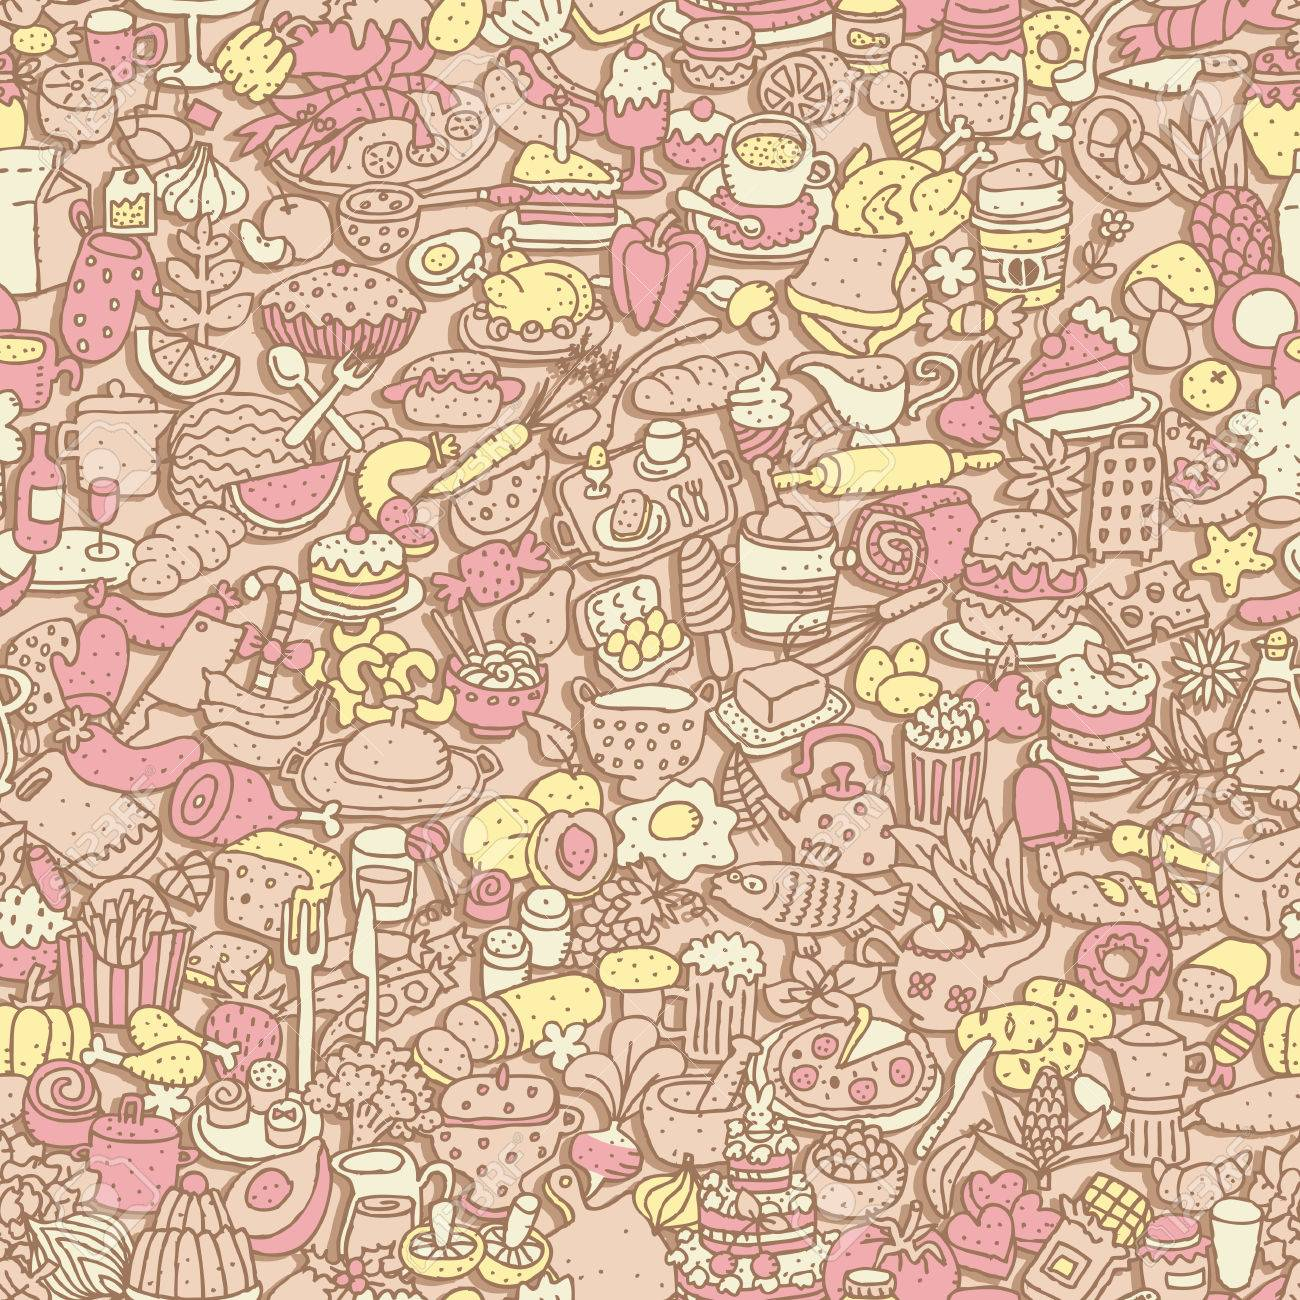 Food seamless pattern (repeated) with mini doodle drawings (icons). Stock Vector - 26609517